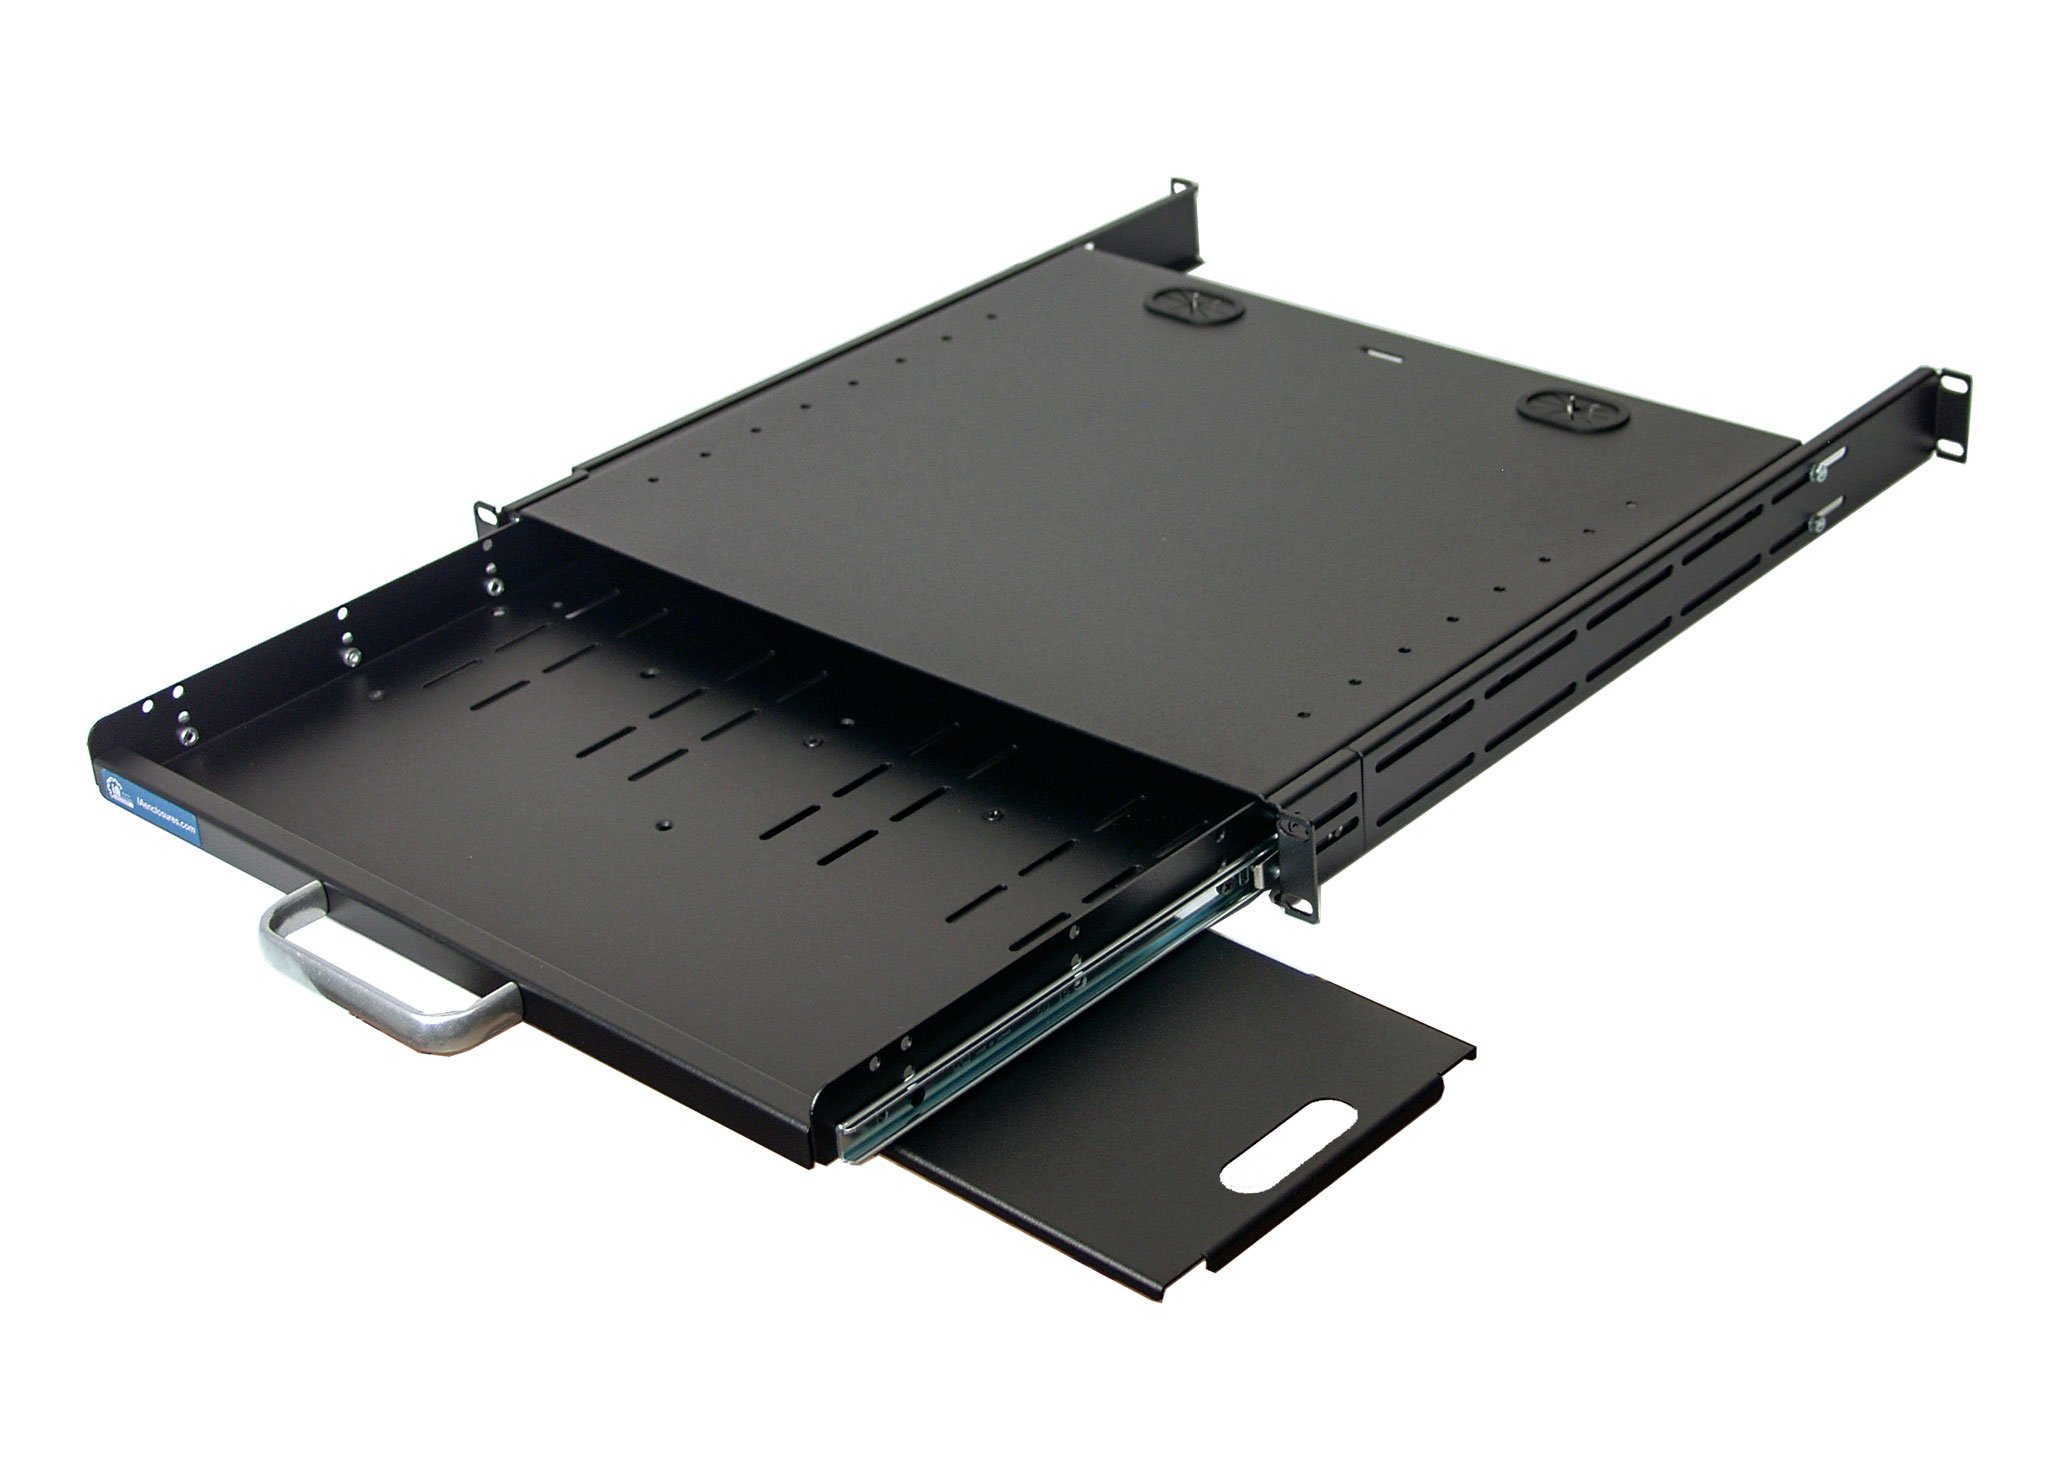 1U Compact rack mount keyboard drawer with retractable mouse pad for right or left hand operator supports 2 post and 4 post rack cabinet